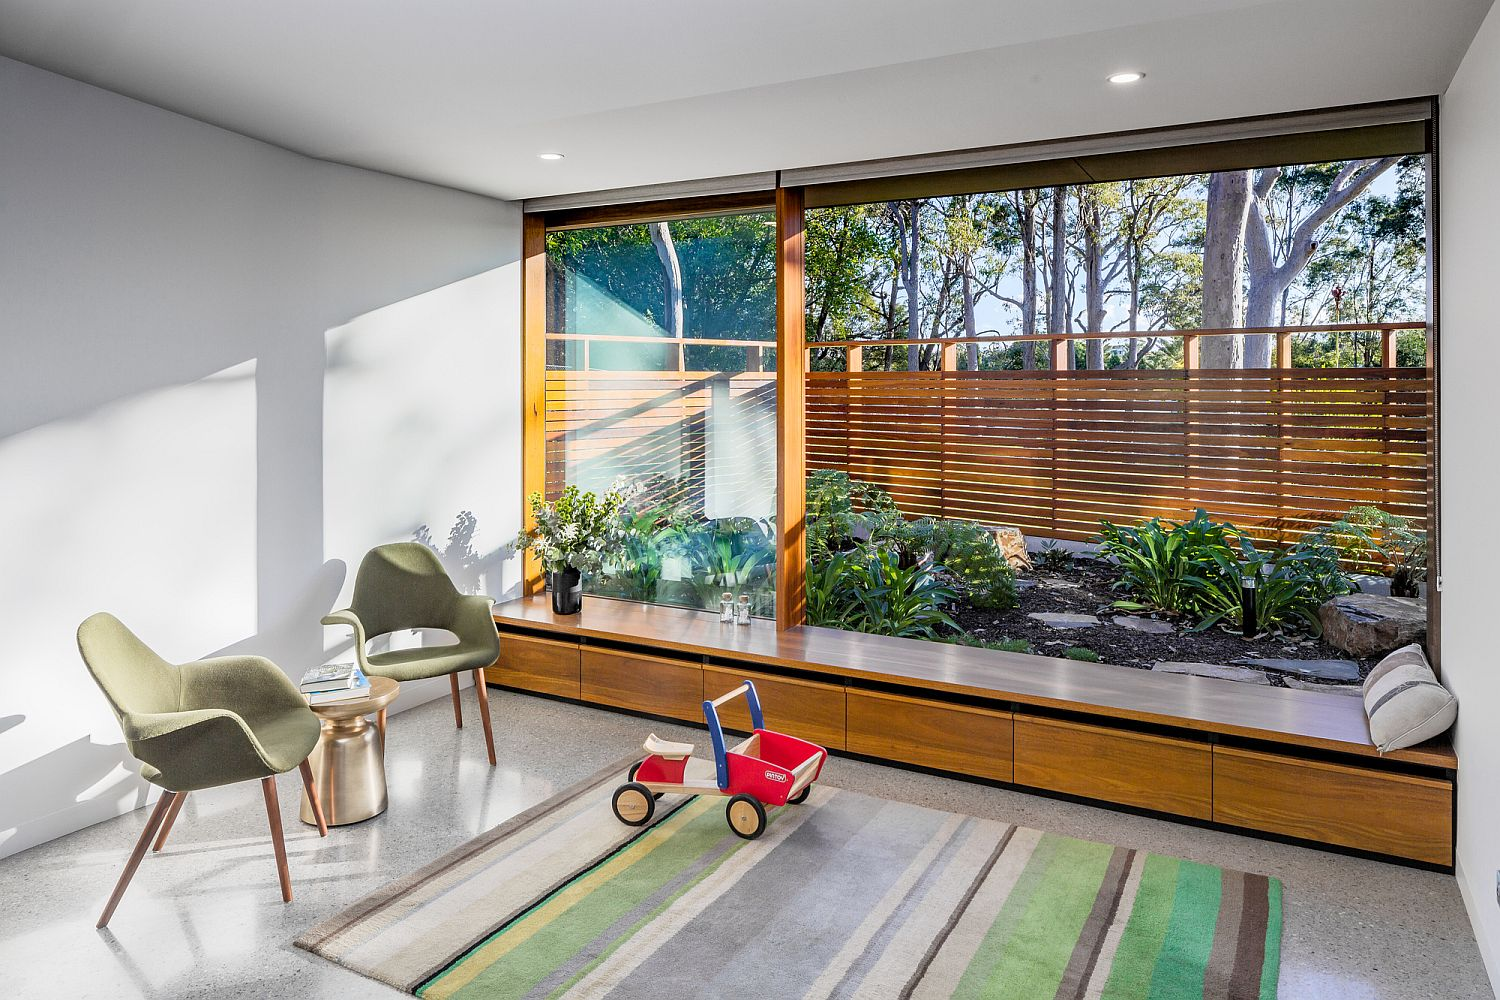 Smart use of glass walls and wooden storage and seat